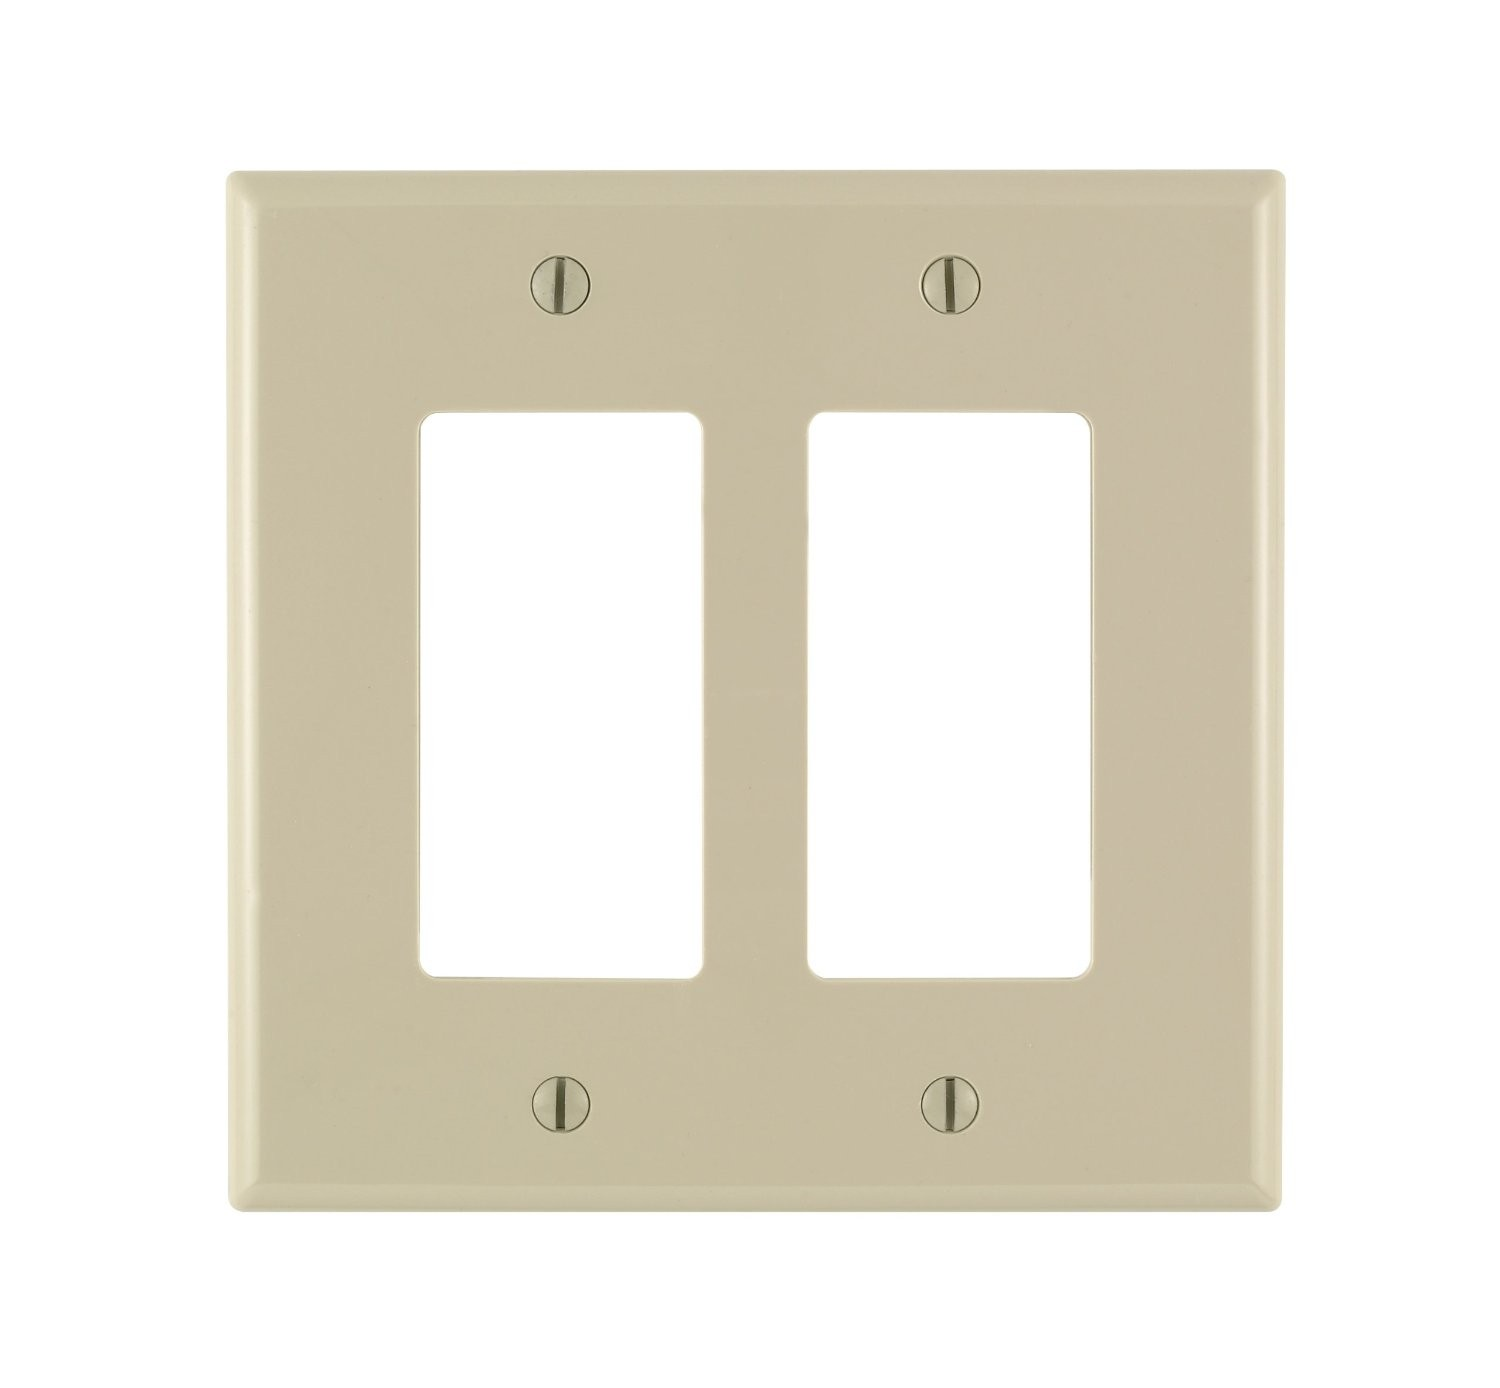 Oversized Switch Plates Leviton 86602 Electrical Wall Plate Oversized Decora 2Gang  Ivory